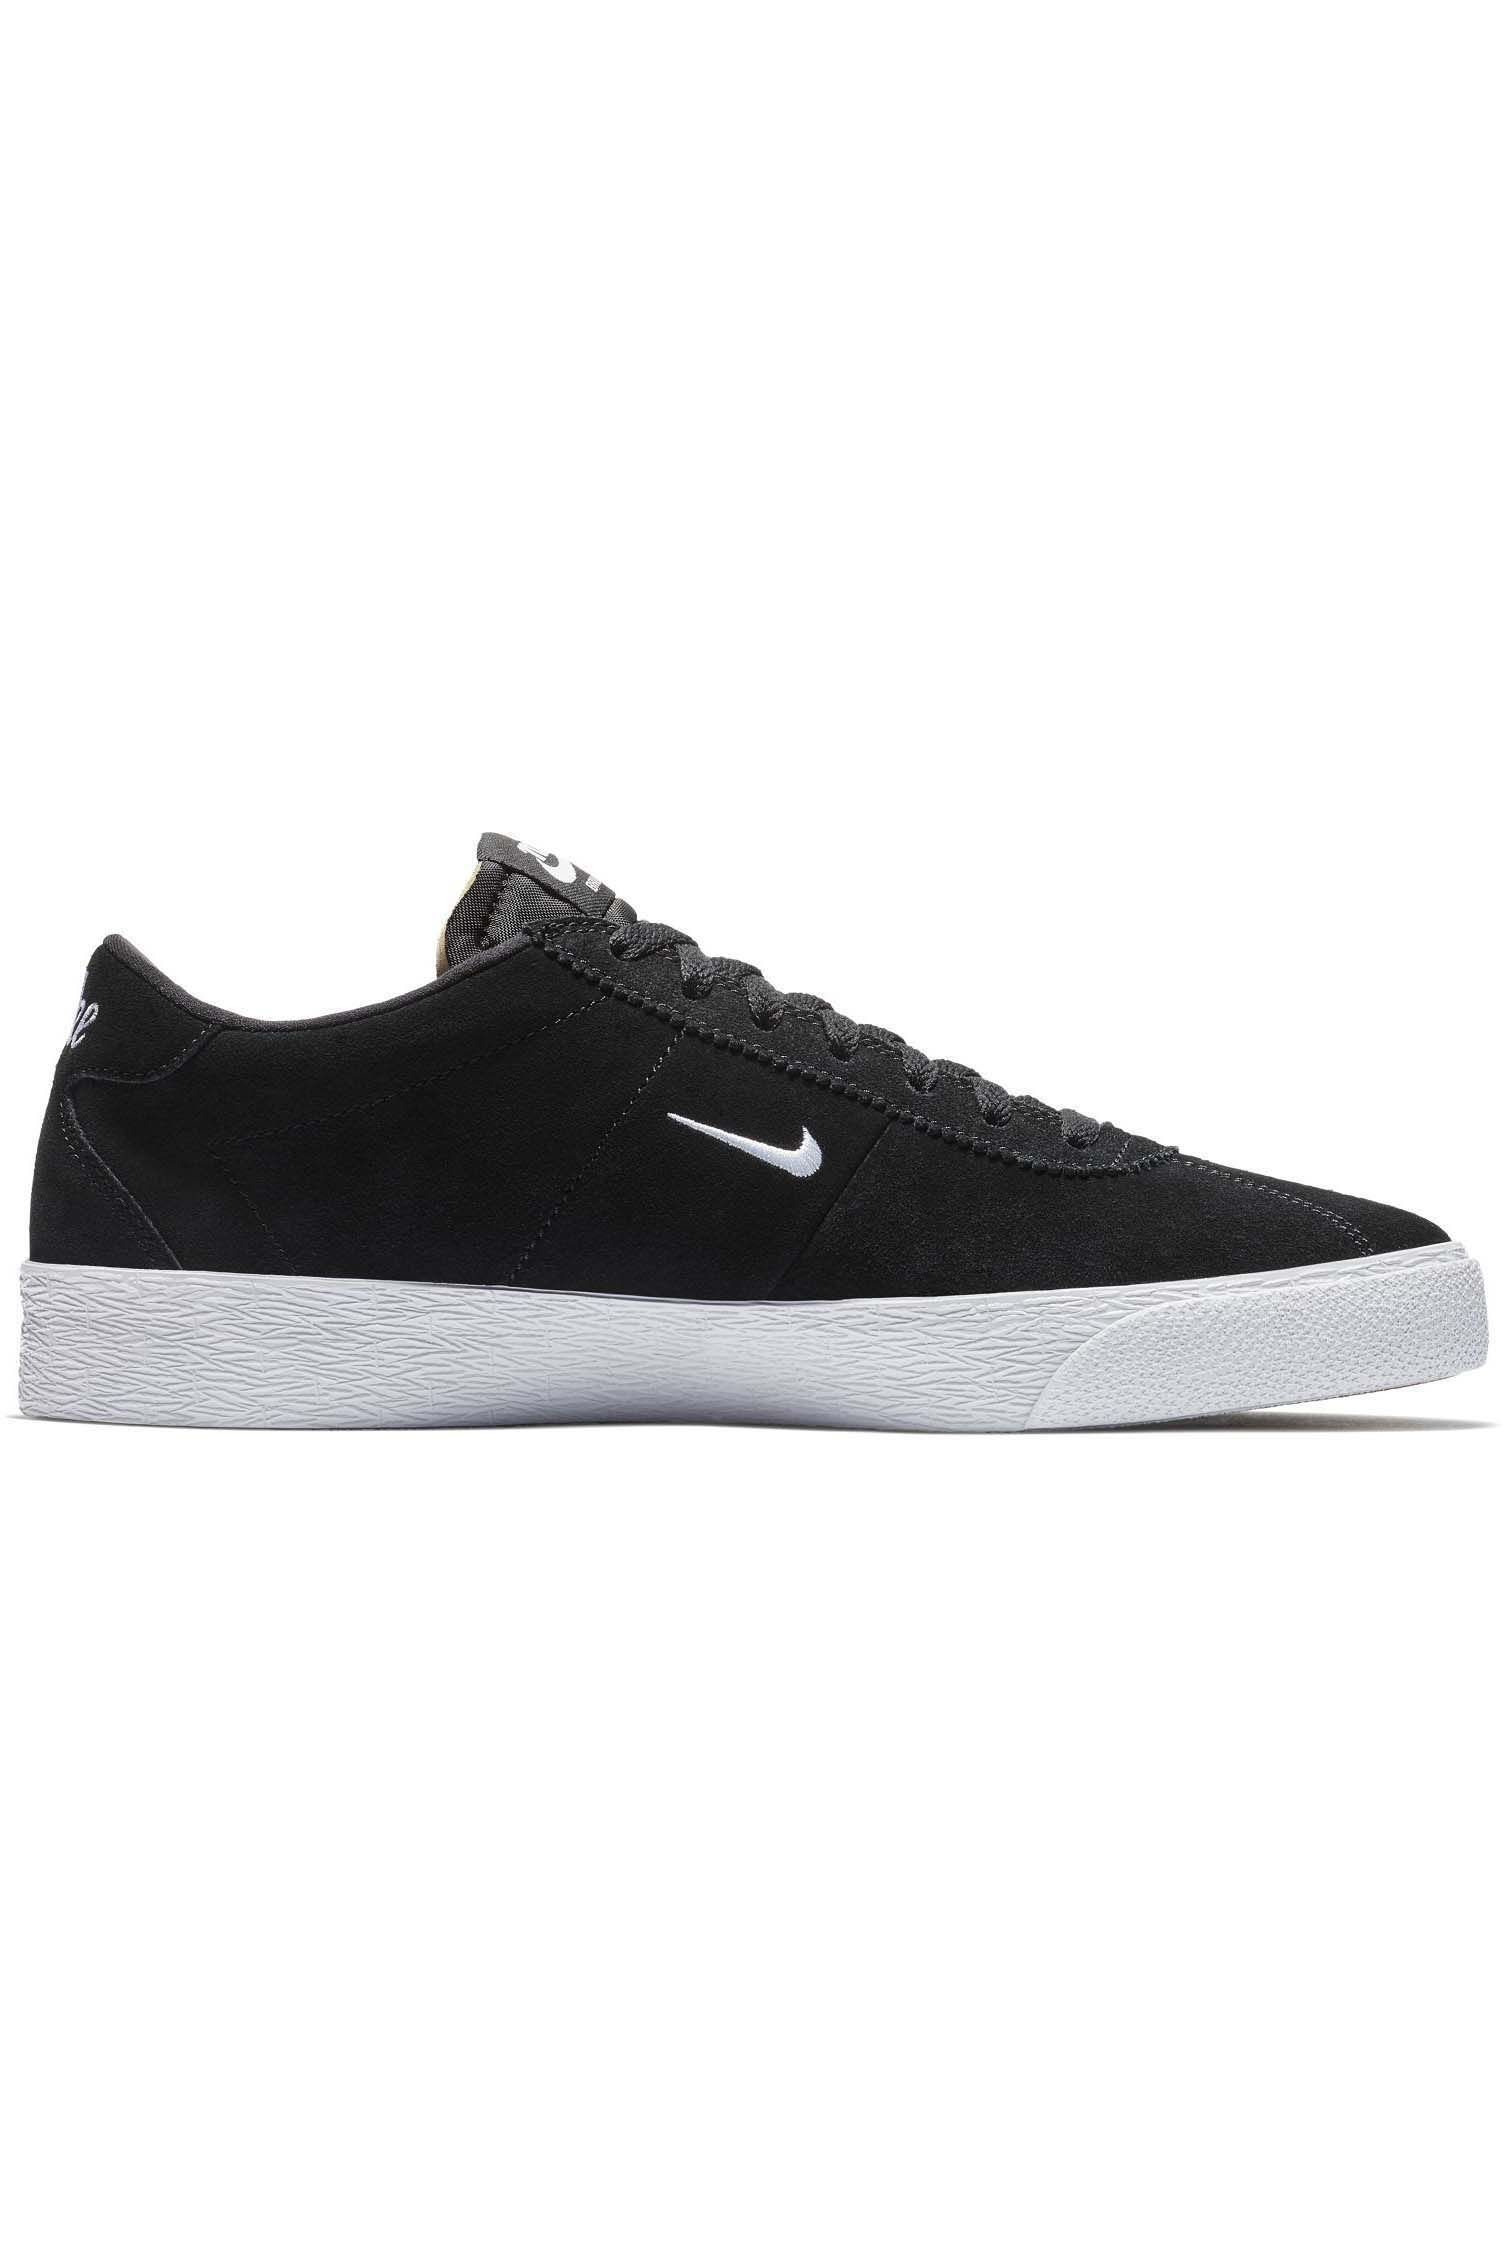 Tenis Nike Sb ZOOM BRUIN ULTRA Black/White-Gum Light Brown